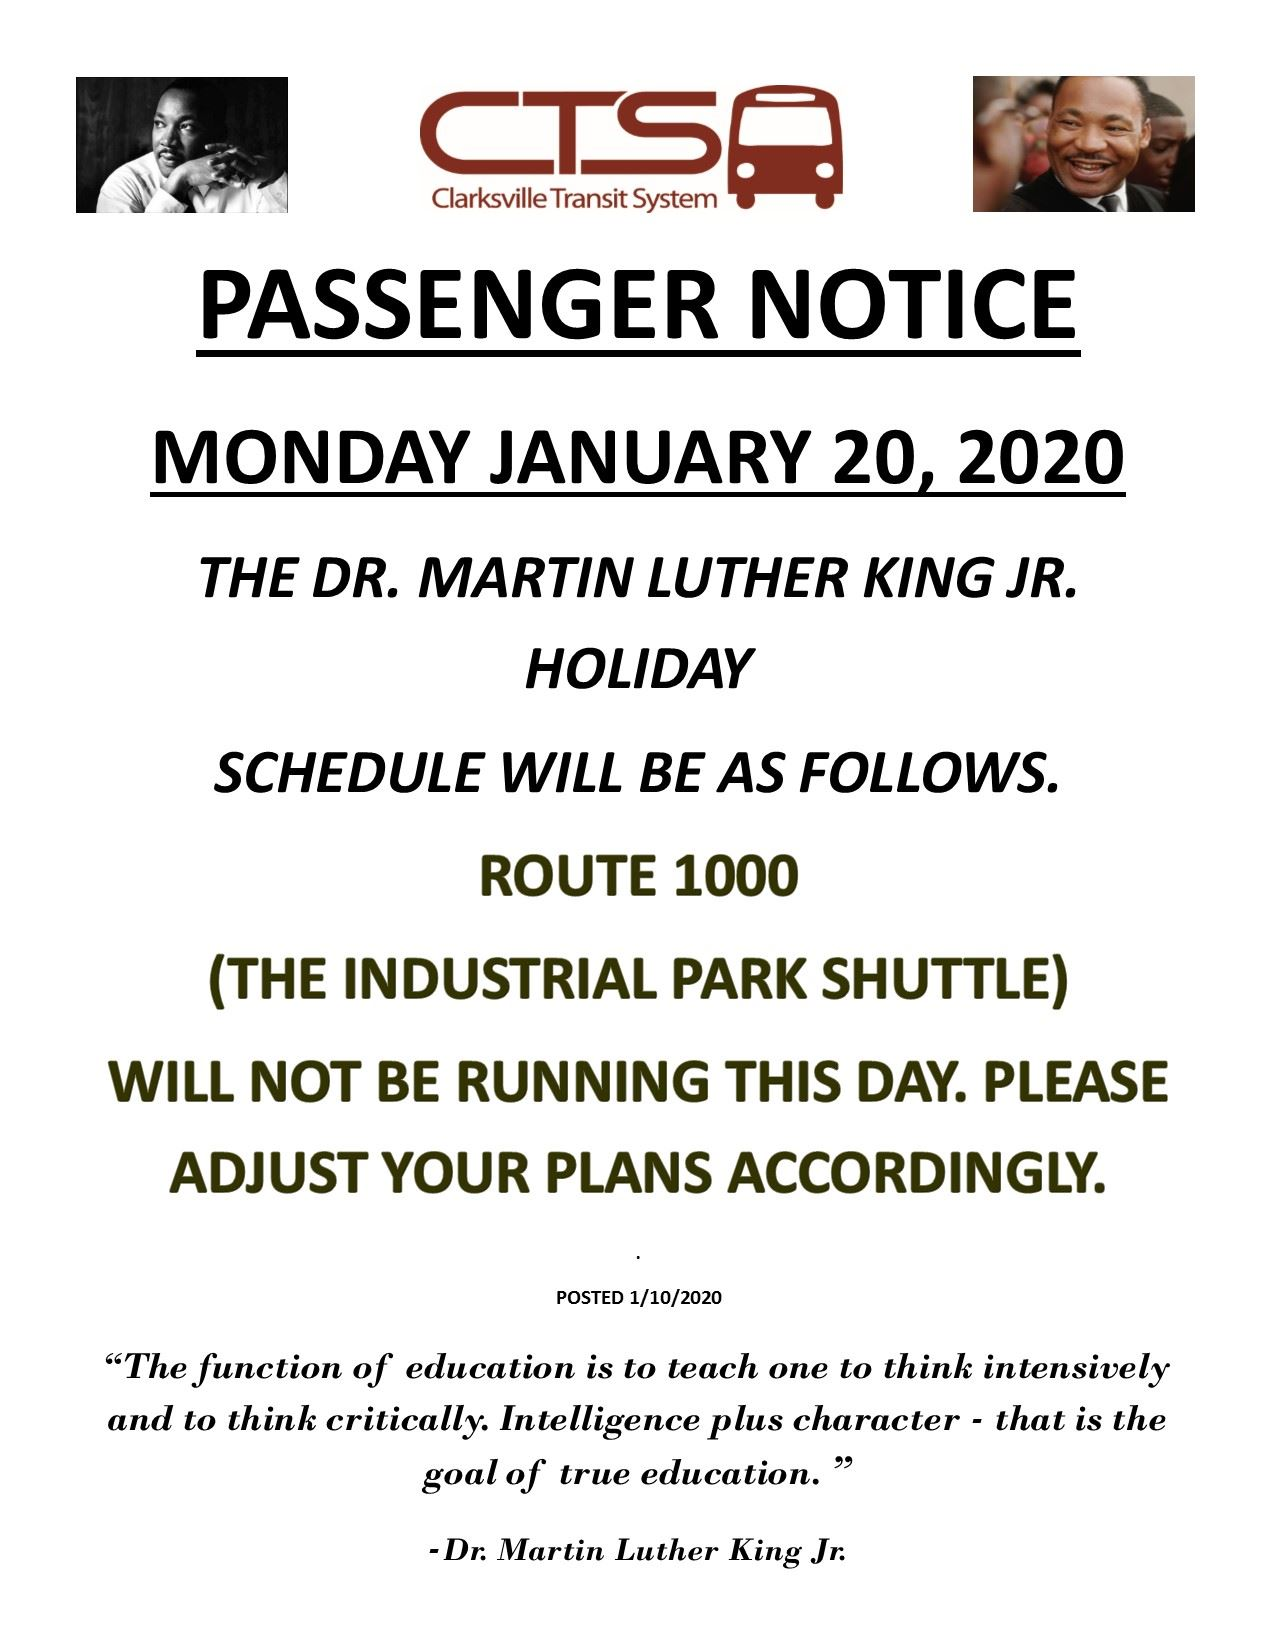 Martin Luther King Jr. schedule 2020